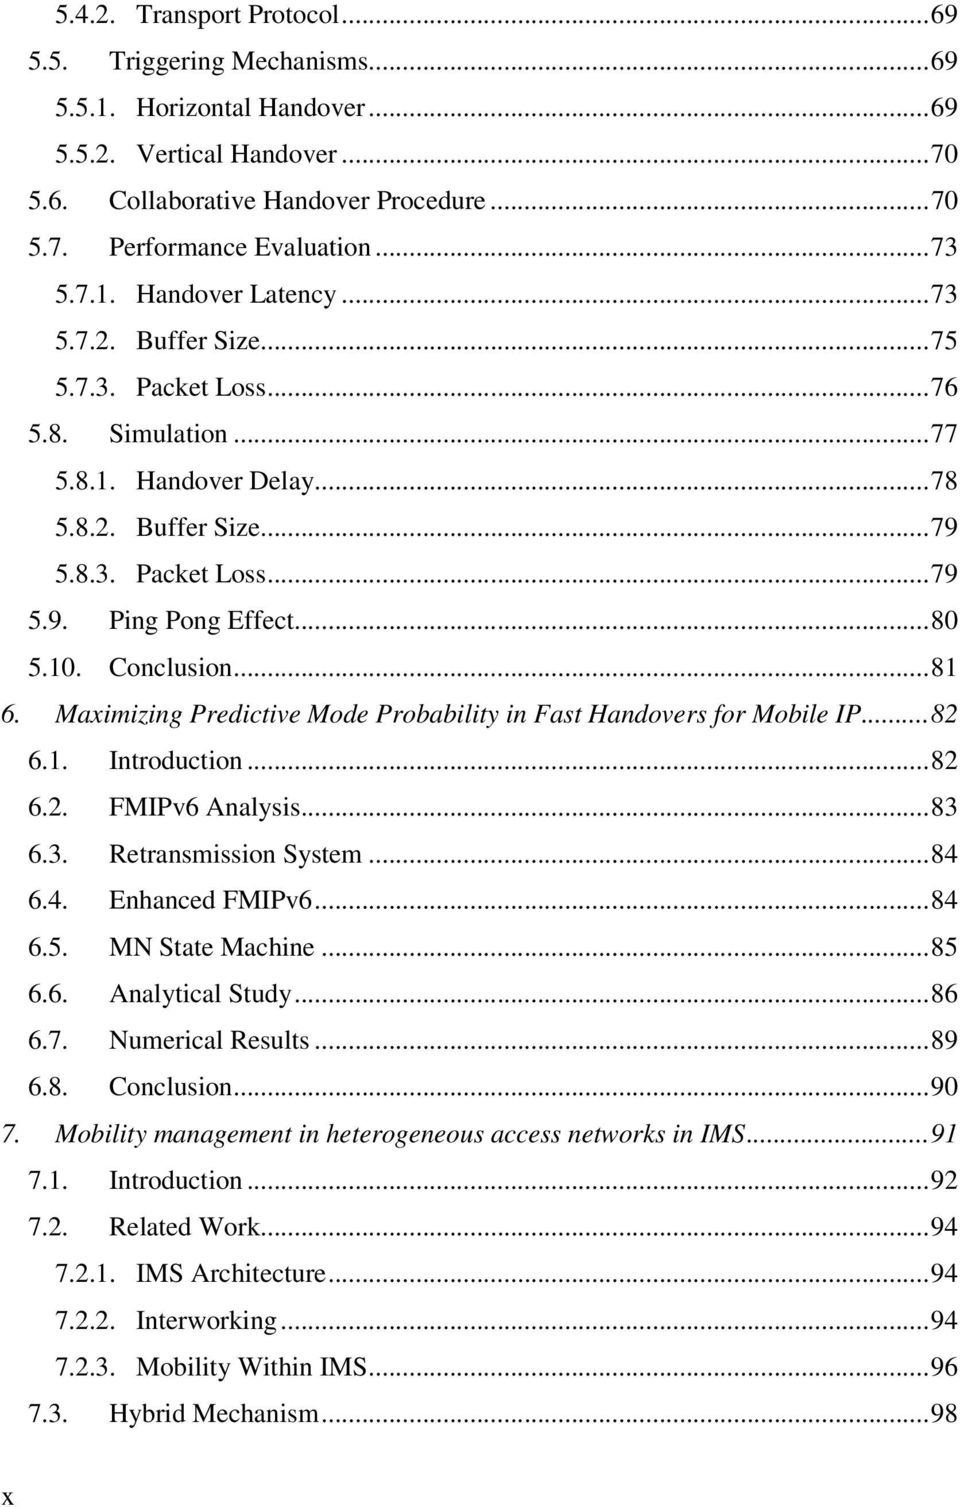 ..80 5.10. Conclusion...81 6. Maximizing Predictive Mode Probability in Fast Handovers for Mobile IP...82 6.1. Introduction...82 6.2. FMIPv6 Analysis...83 6.3. Retransmission System...84